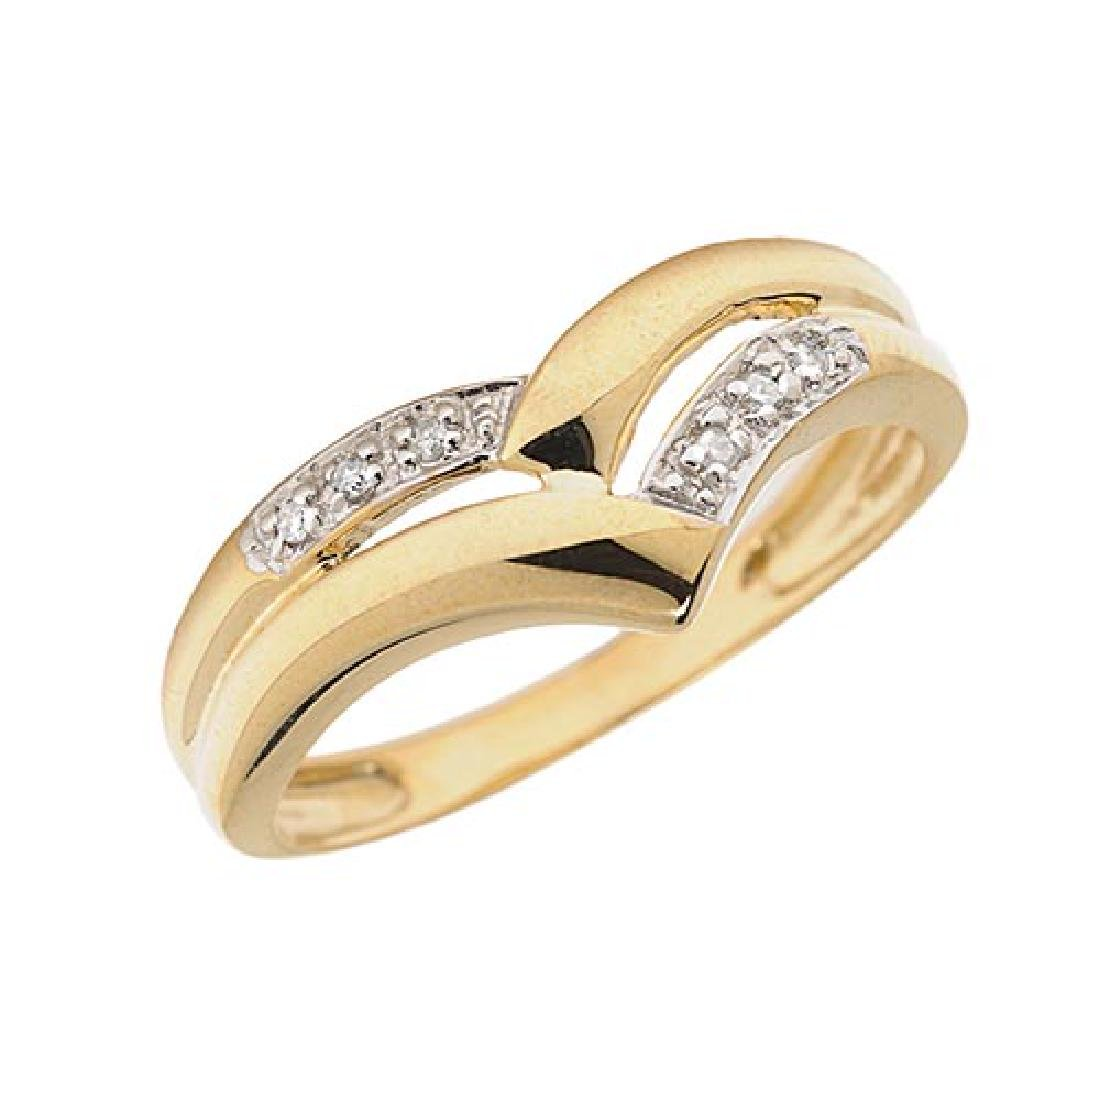 Certified 10K Yellow Gold Diamond Chevron Ring